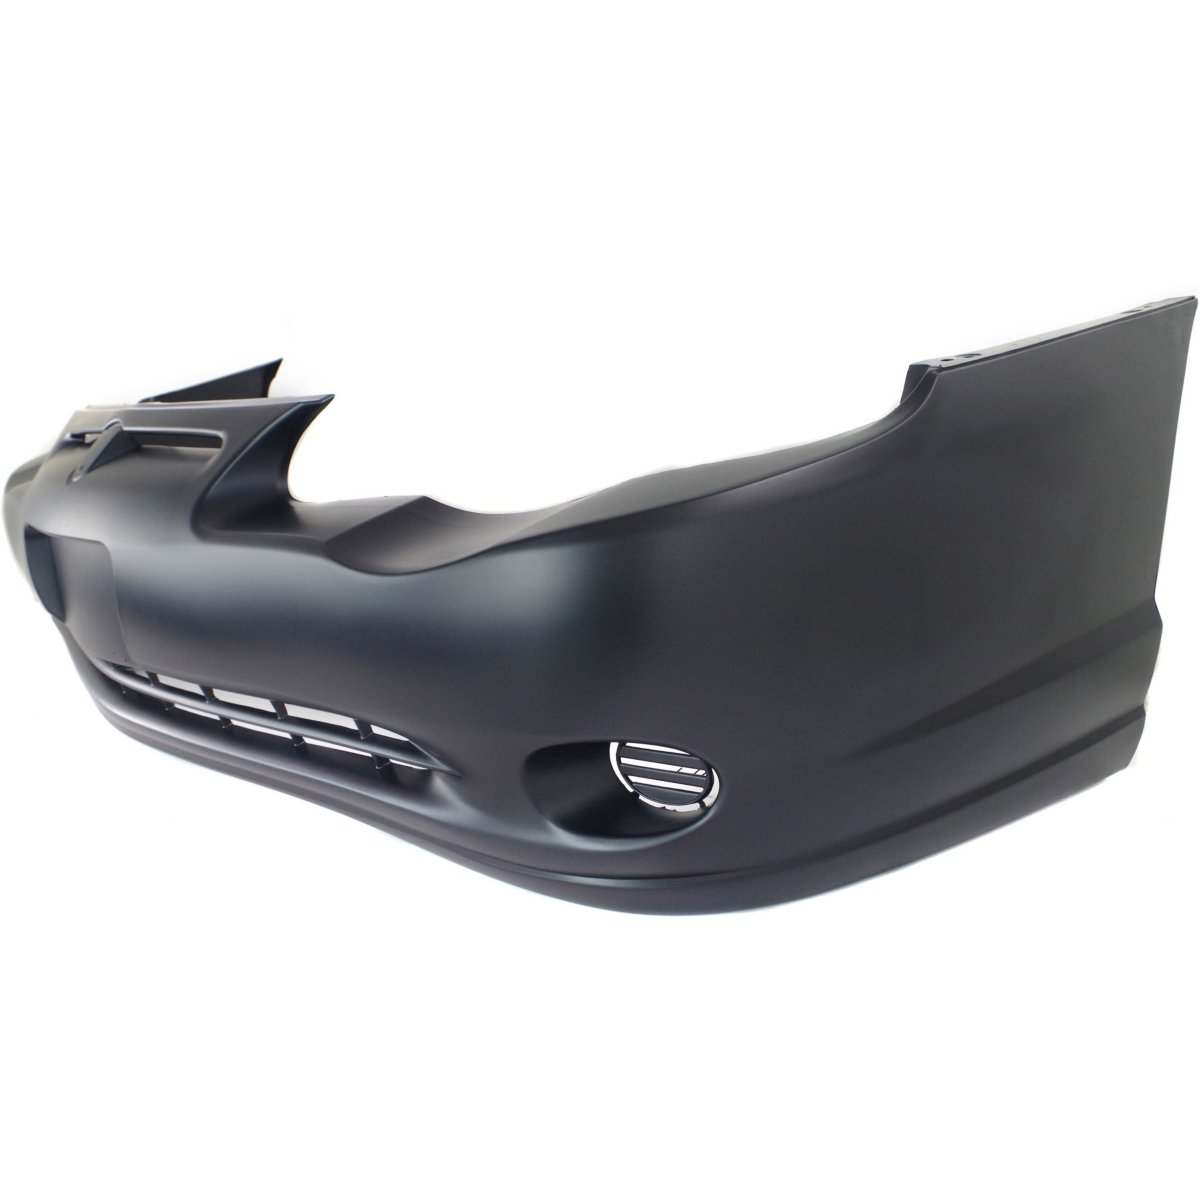 12335836 GM1000587 Front New Bumper Cover Chevy Chevrolet